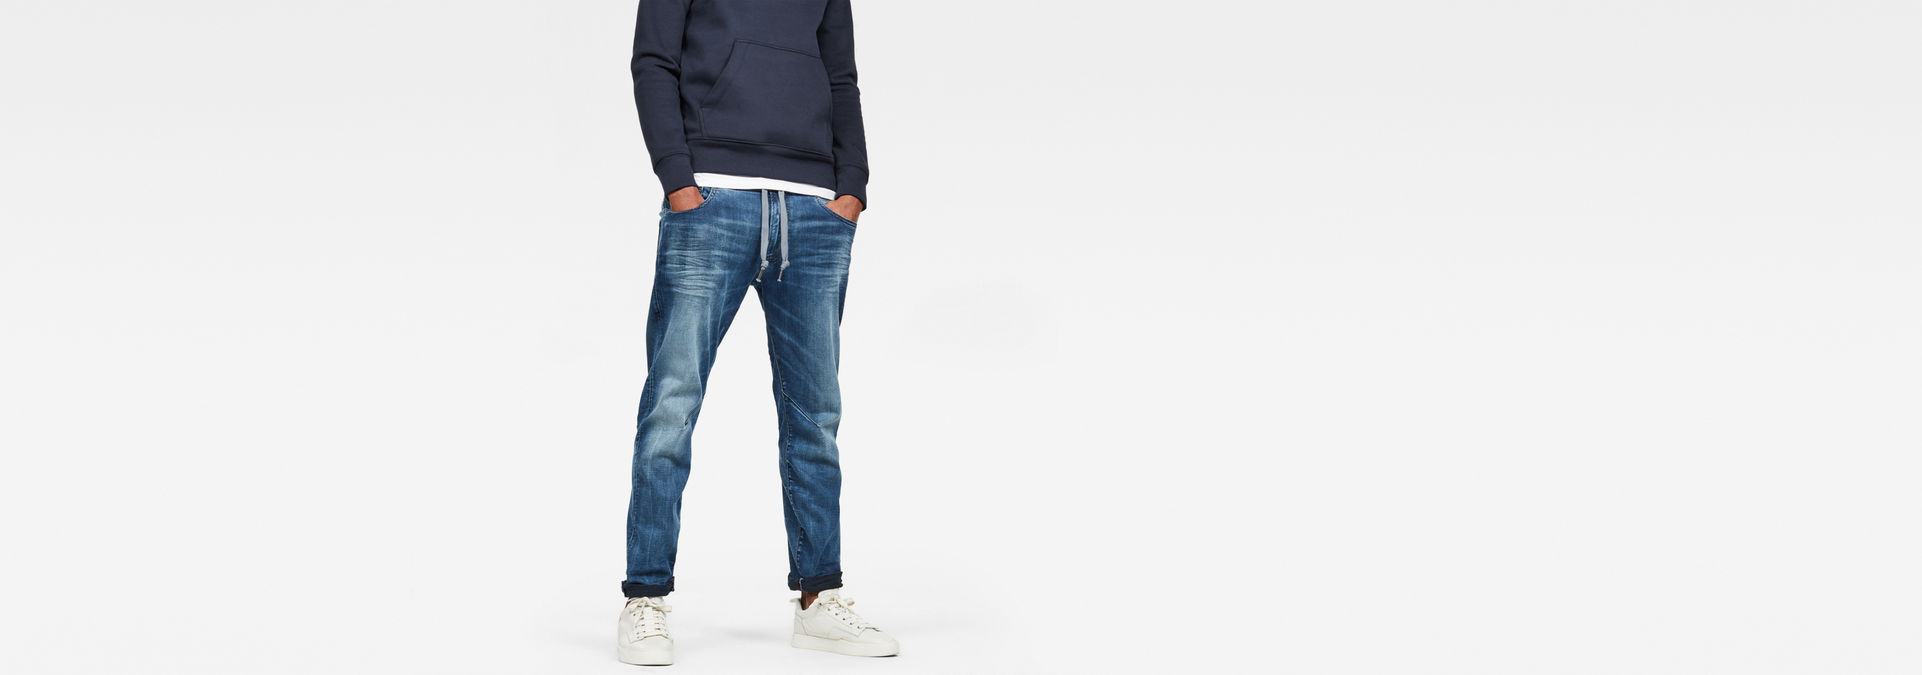 Arc 3D Sport Straight Tapered Jeans   Light Aged   G Star RAW®